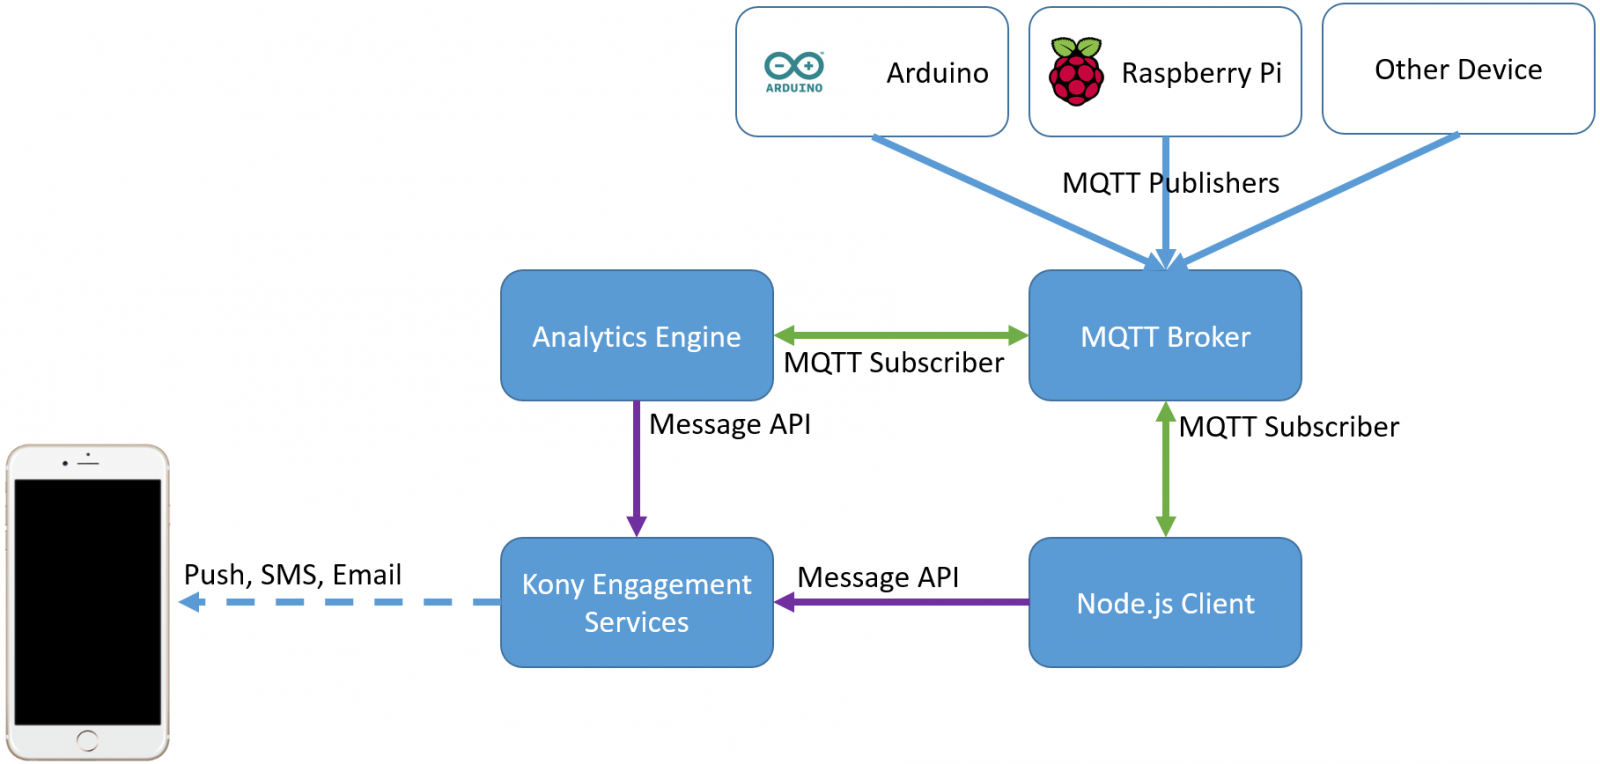 Article: IoT with Raspberry Pi and Messaging